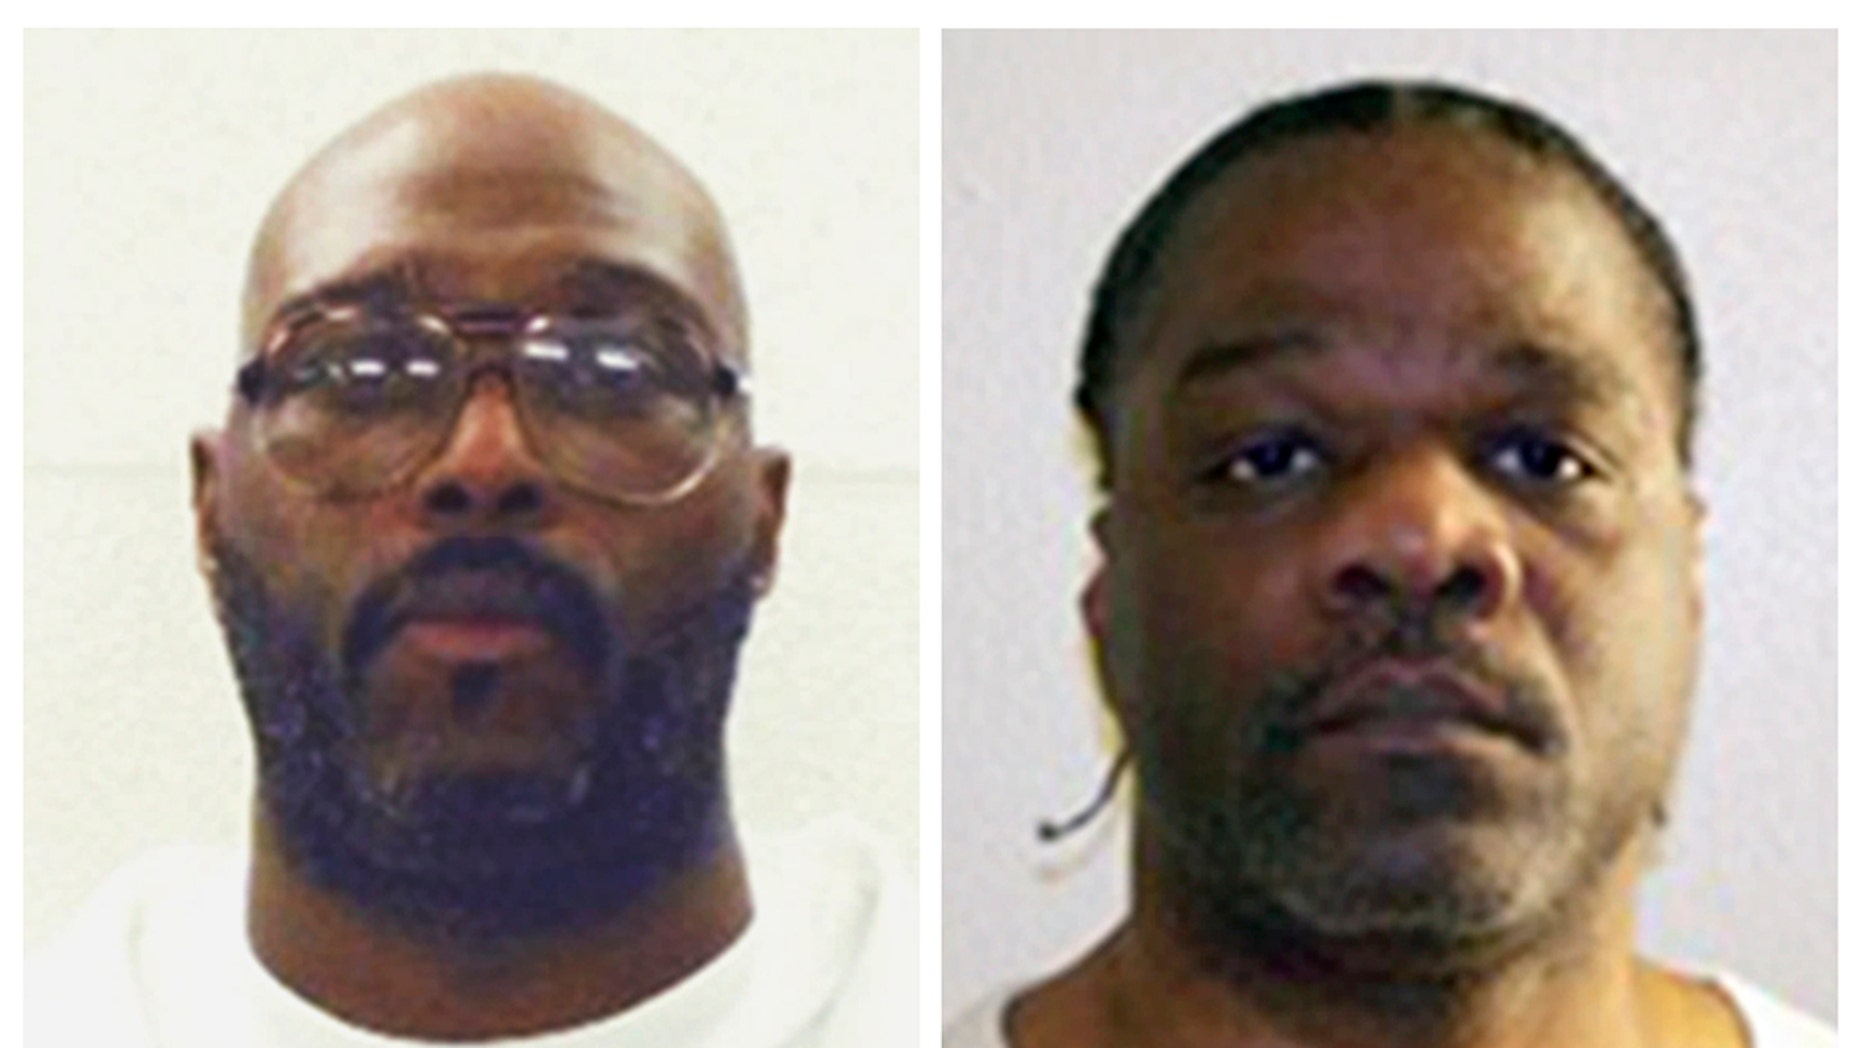 This combination of undated photos provided by the Arkansas Department of Correction shows death-row inmates Stacey E. Johnson, left, and Ledell Lee. Both men are scheduled for execution on April 20, 2017. (Arkansas Department of Correction via AP)